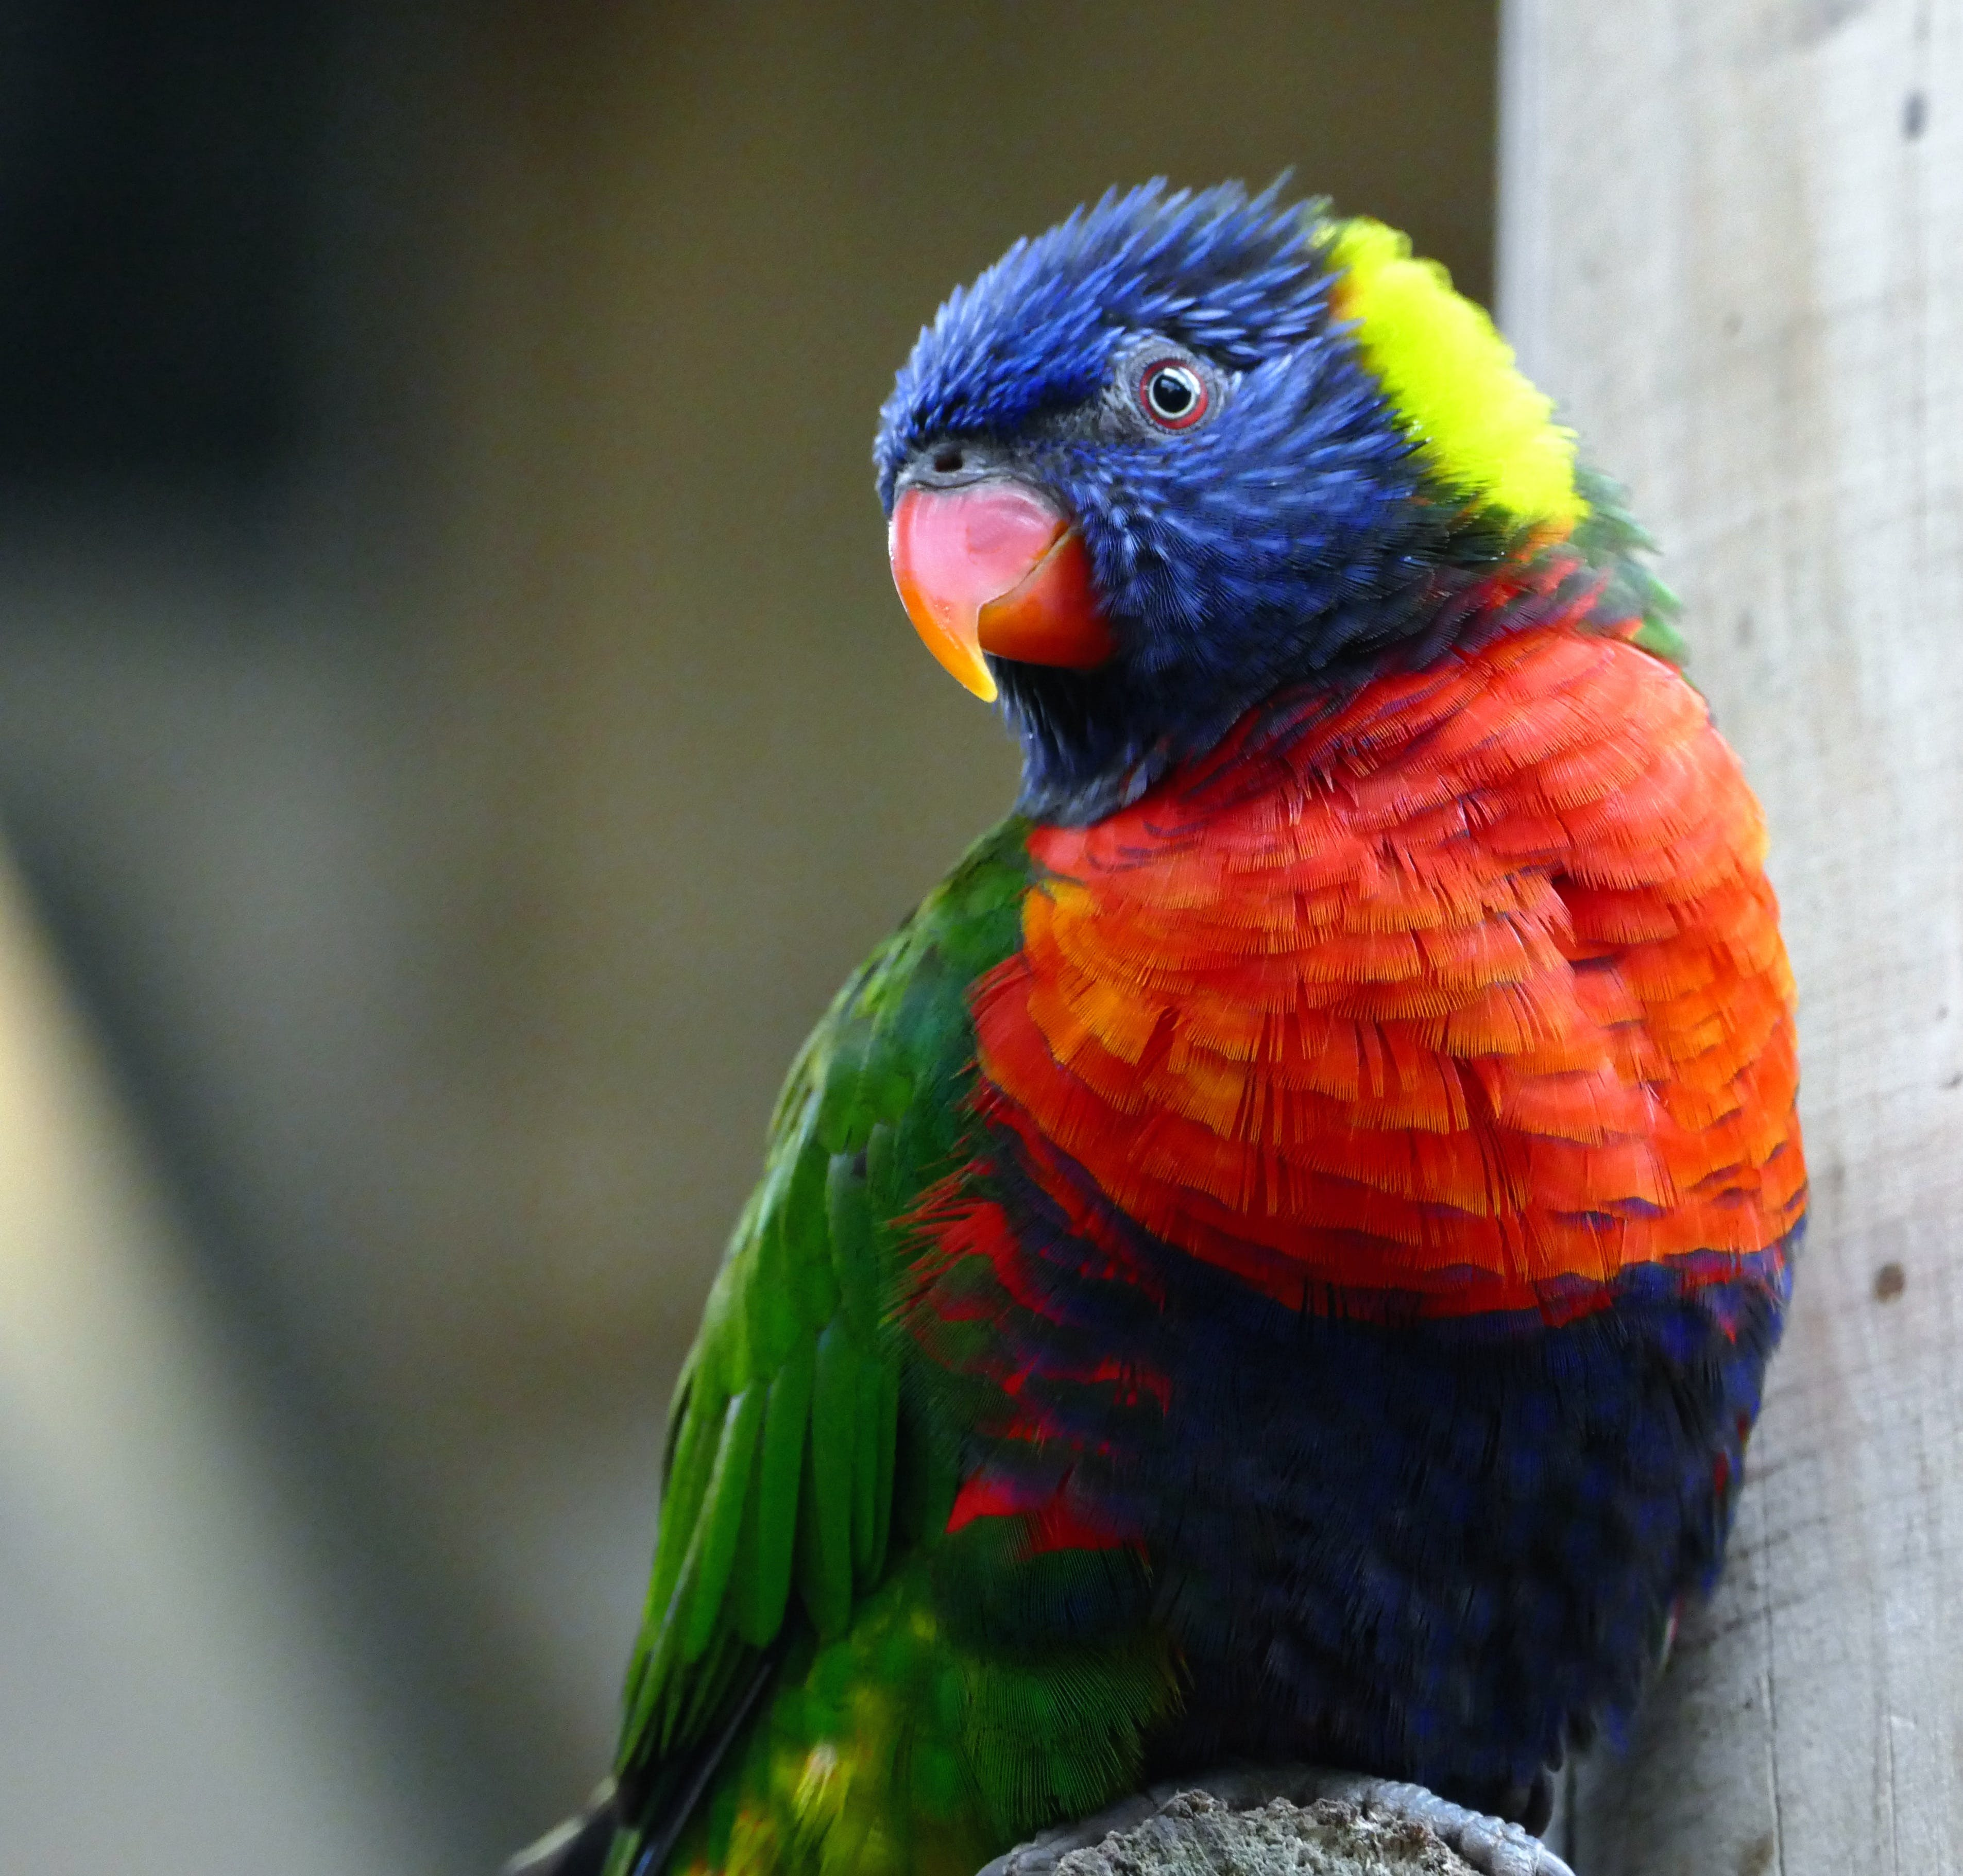 Rainbow Lorikeet Resting on Perch